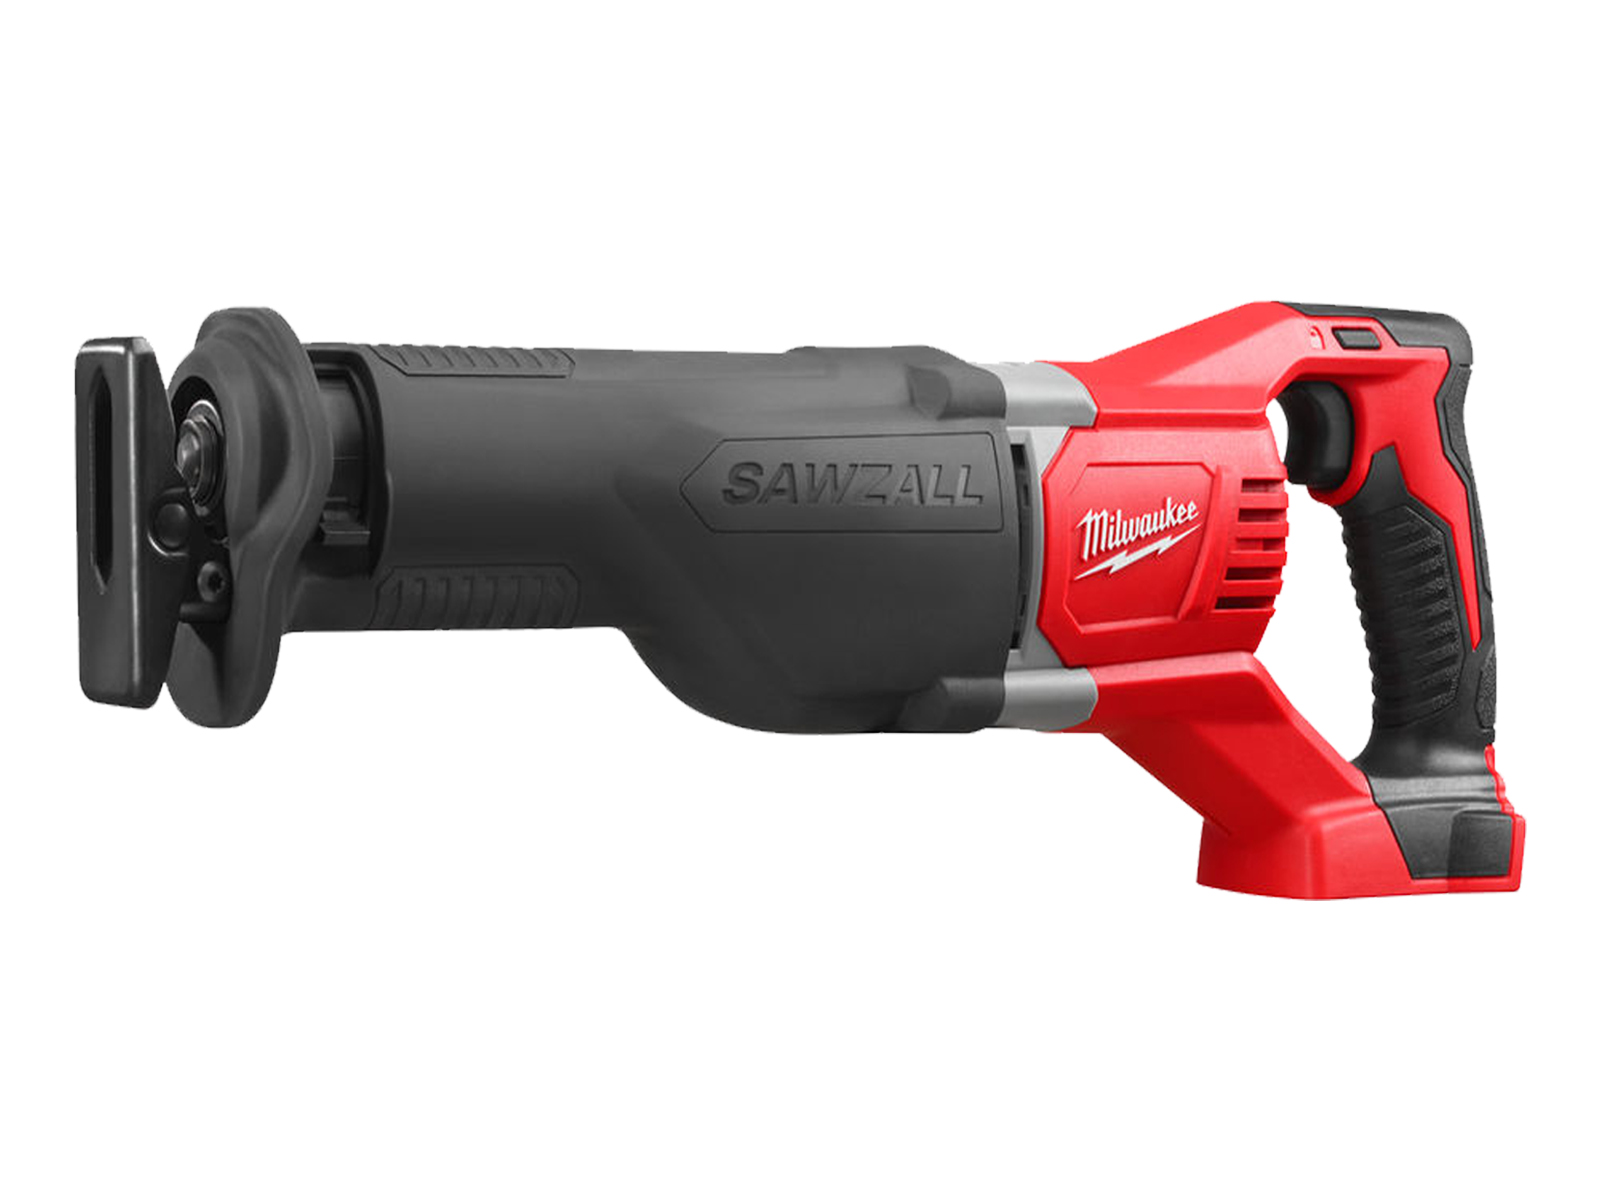 MILWAUKEE 18V BRUSHED SAWZALL (RECIPROCATING SAW) - M18BSX - BODY ONLY